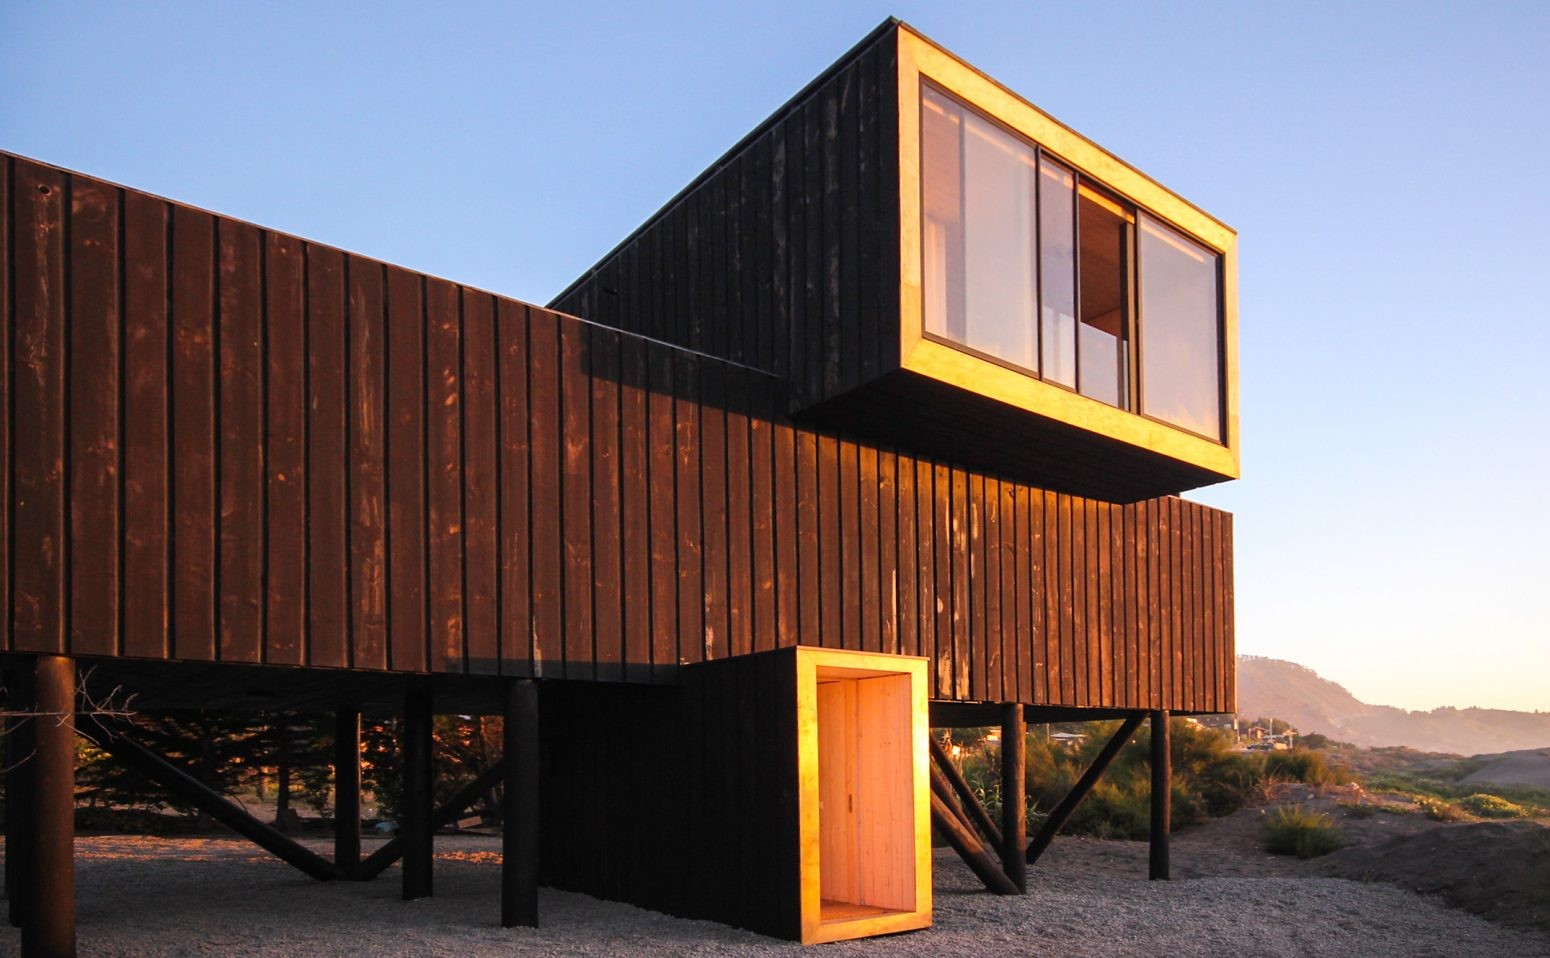 2-houses-puertecillo-2dm-architecture-residential_dezeen_2364_hero-c-1704x959